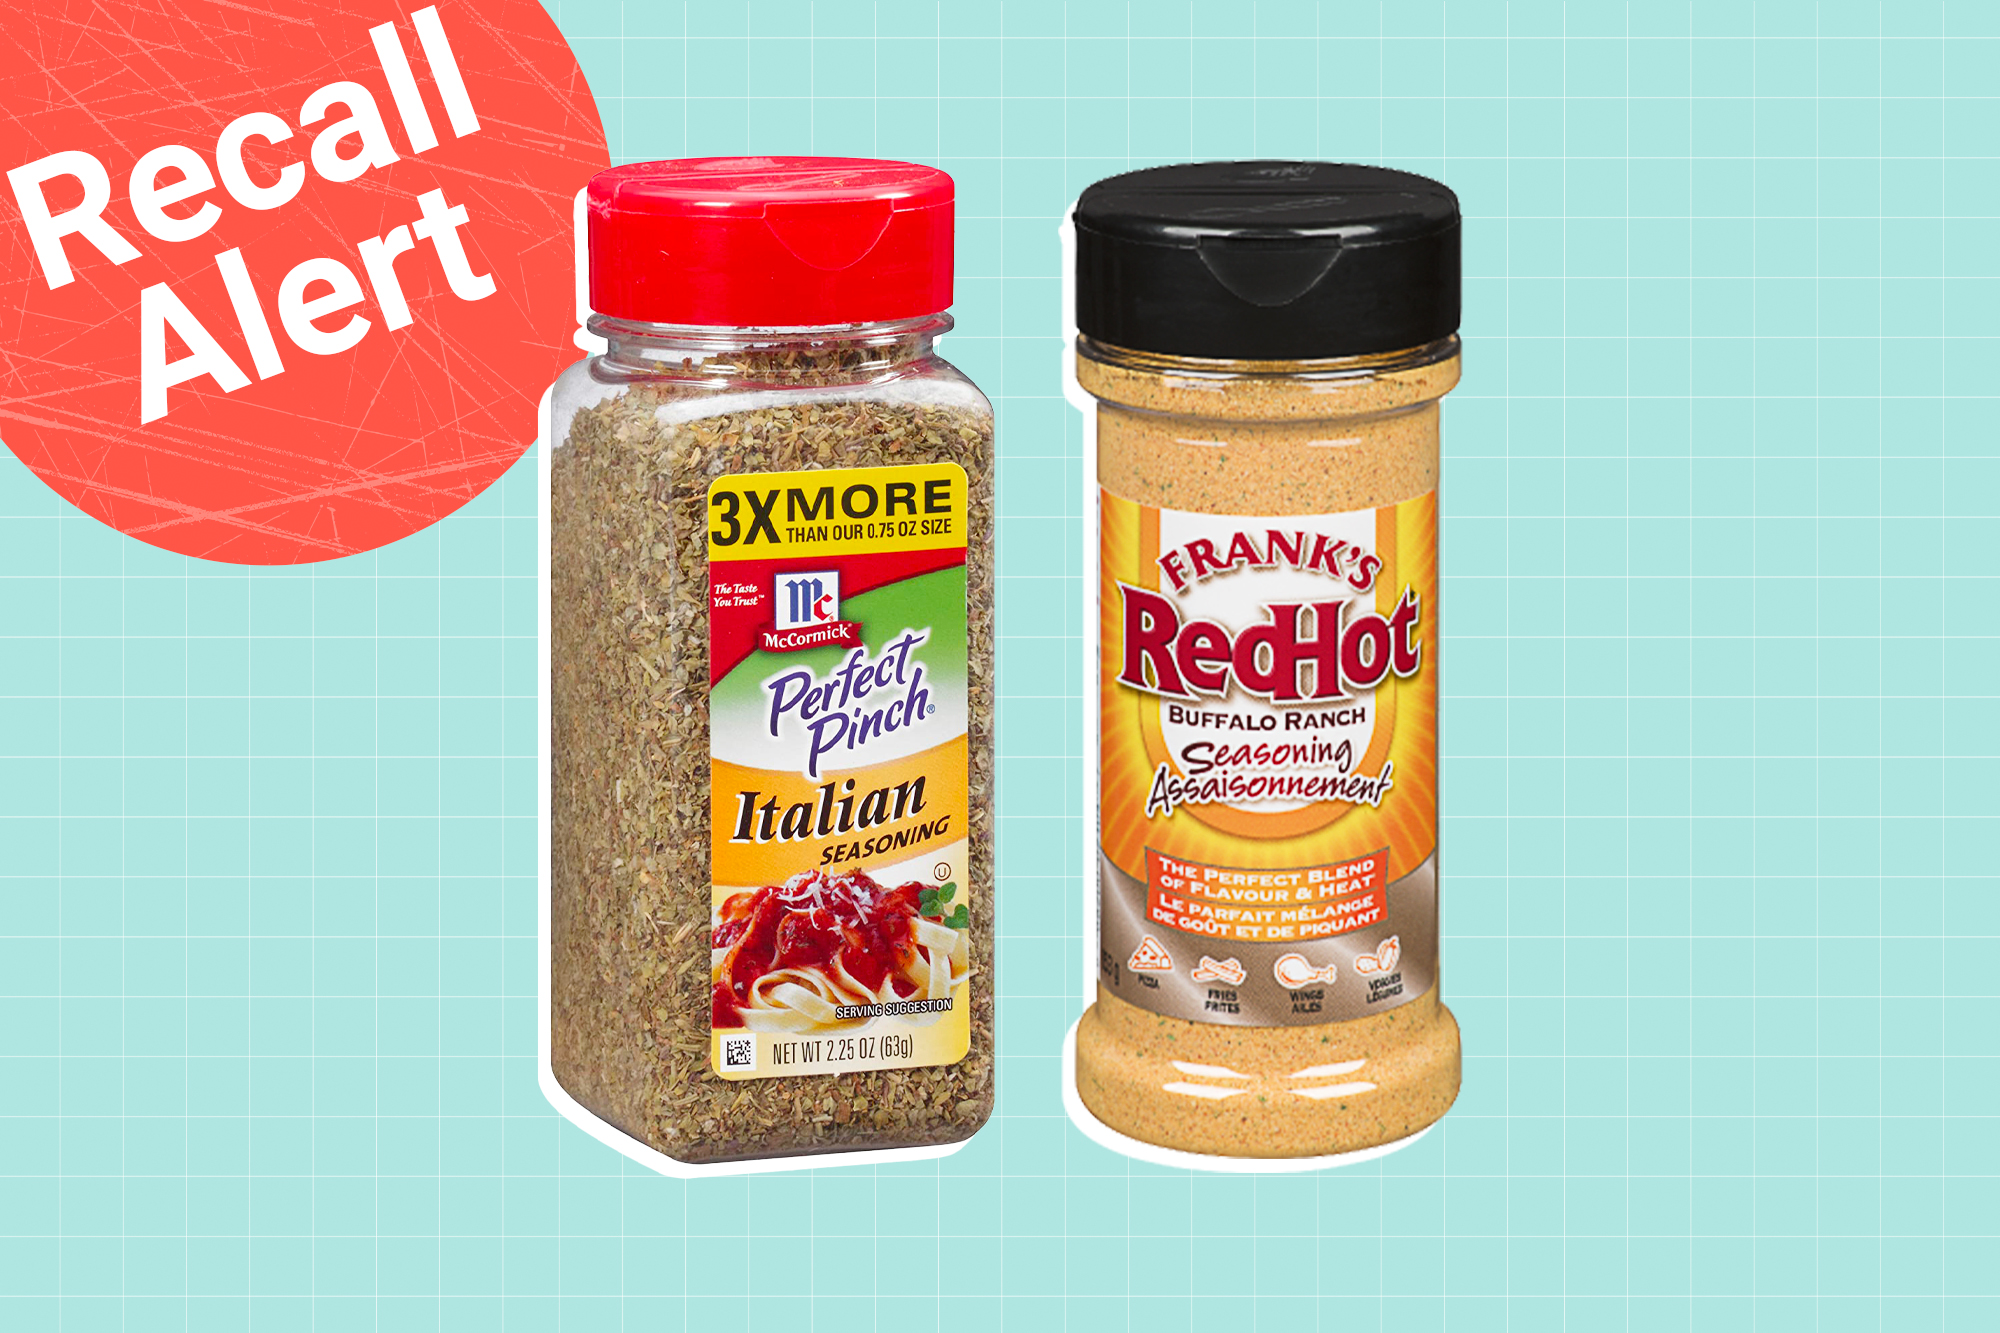 Frank's RedHot BUFFALO RANCH SEASONING BLEND and McCormick Perfect Pinch, Italian Seasoning on a designed background with a recall button